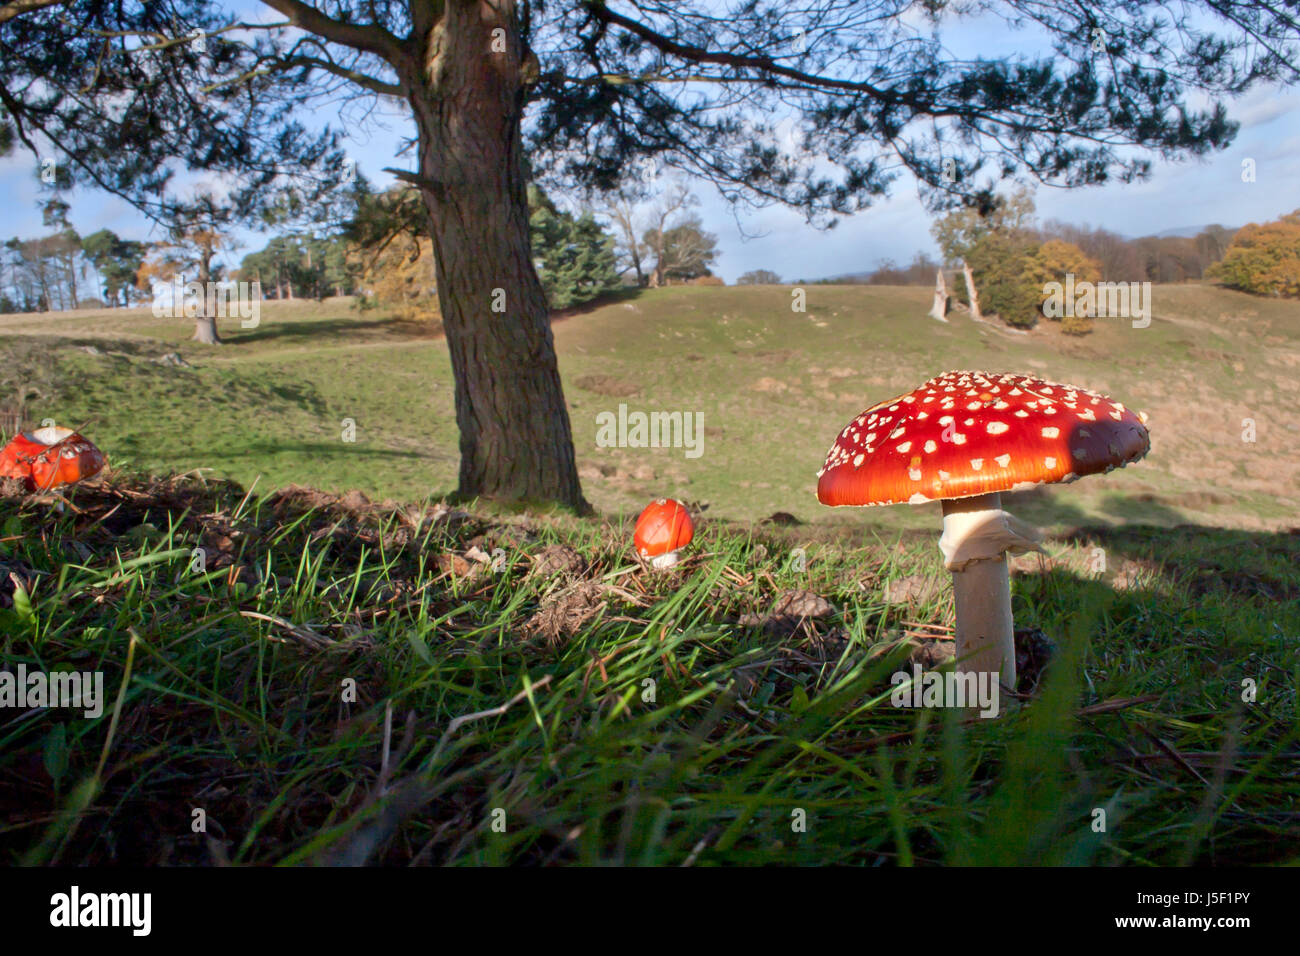 fly agaric (Amanita muscaria), fruiting bodies, Petworth Park, West Sussex - Stock Image